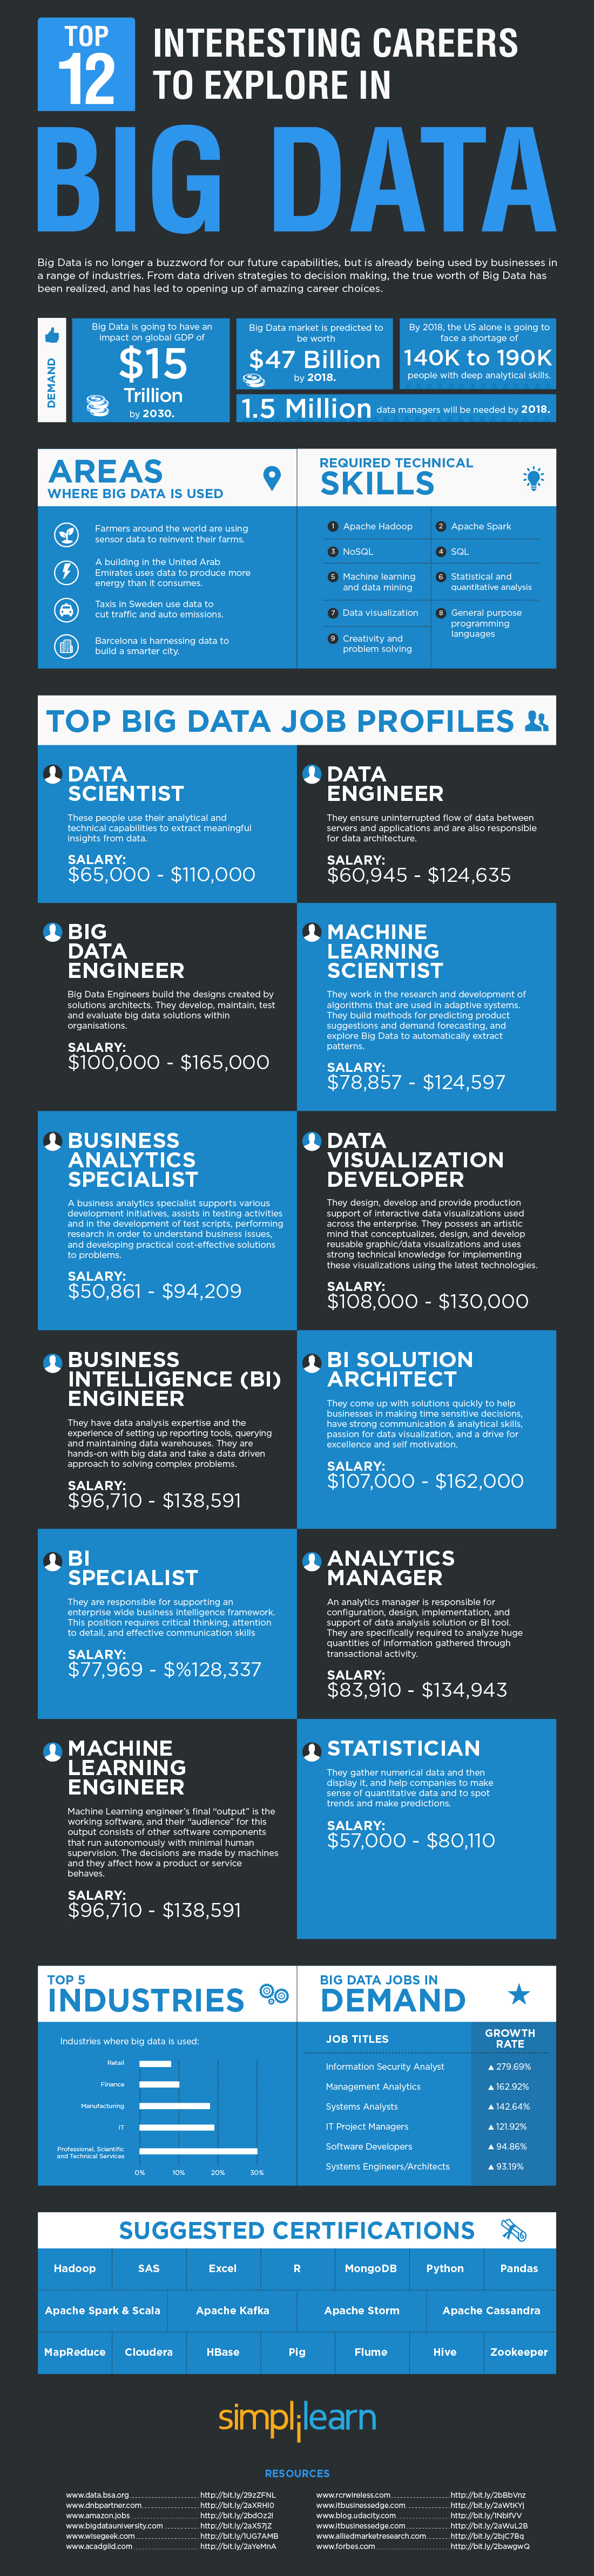 top-12-interesting-careers-to-explore-in-bigdata-2016